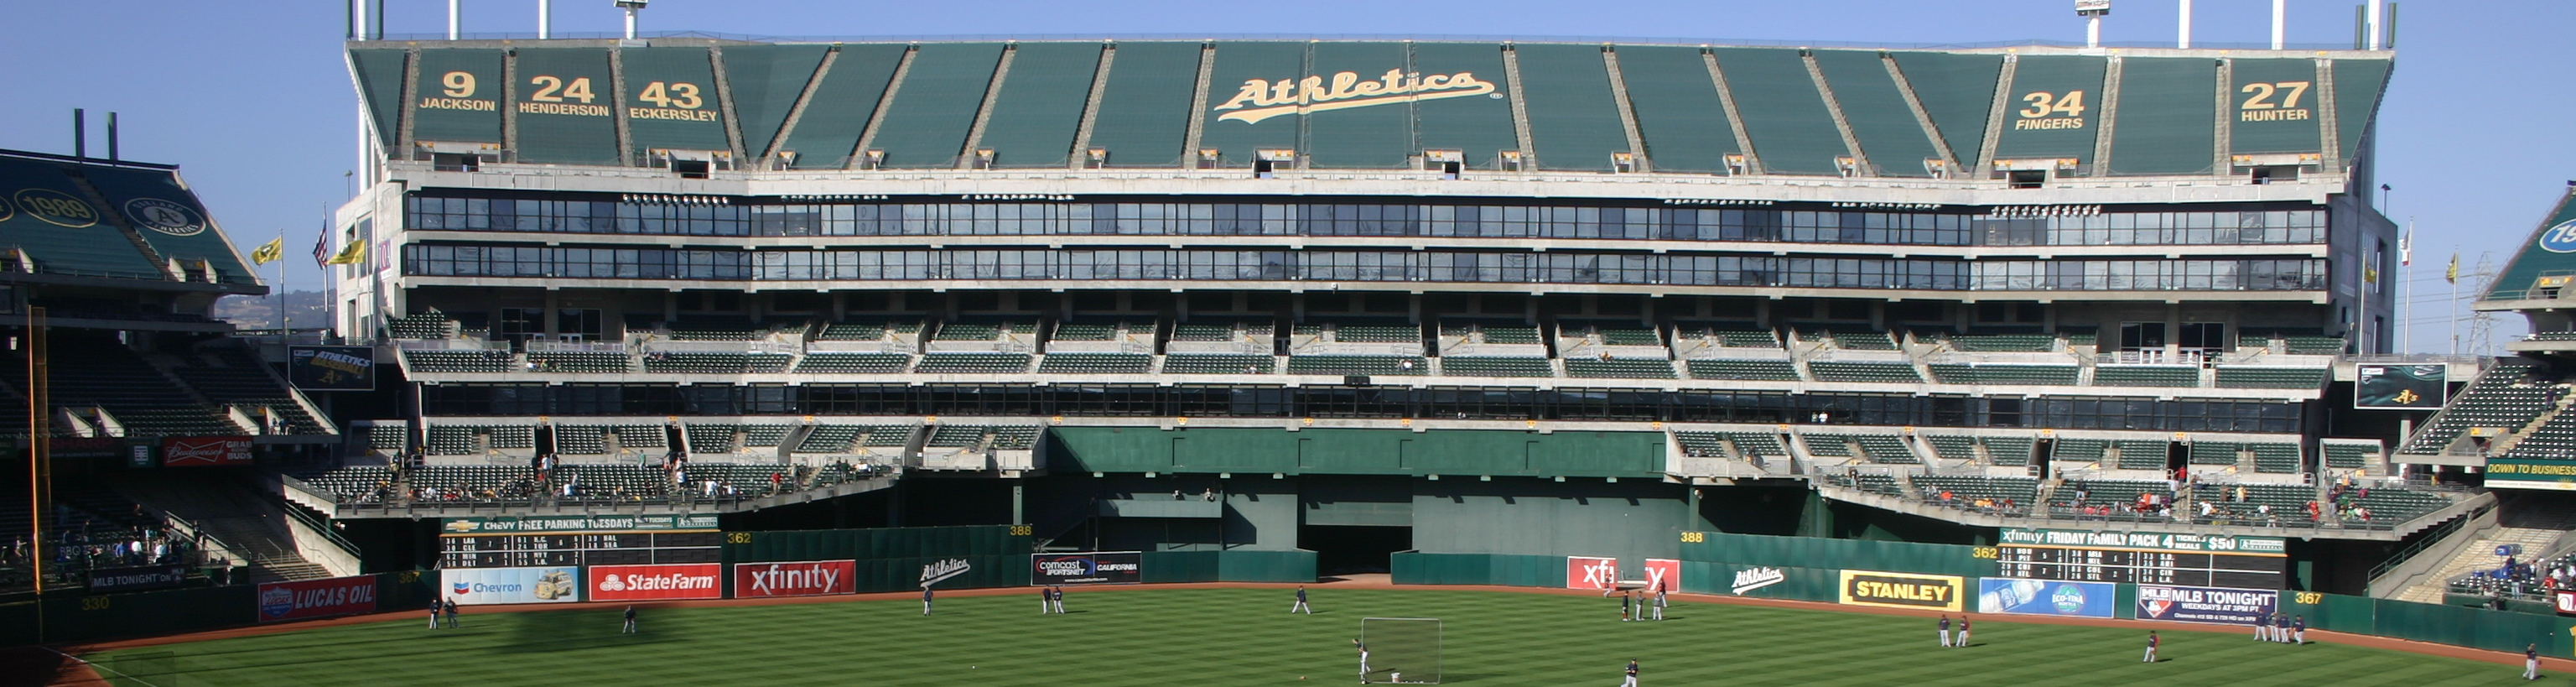 Oakland Coliseum,California Tours,West Coast Baseball Tour,Baseball Road Trip